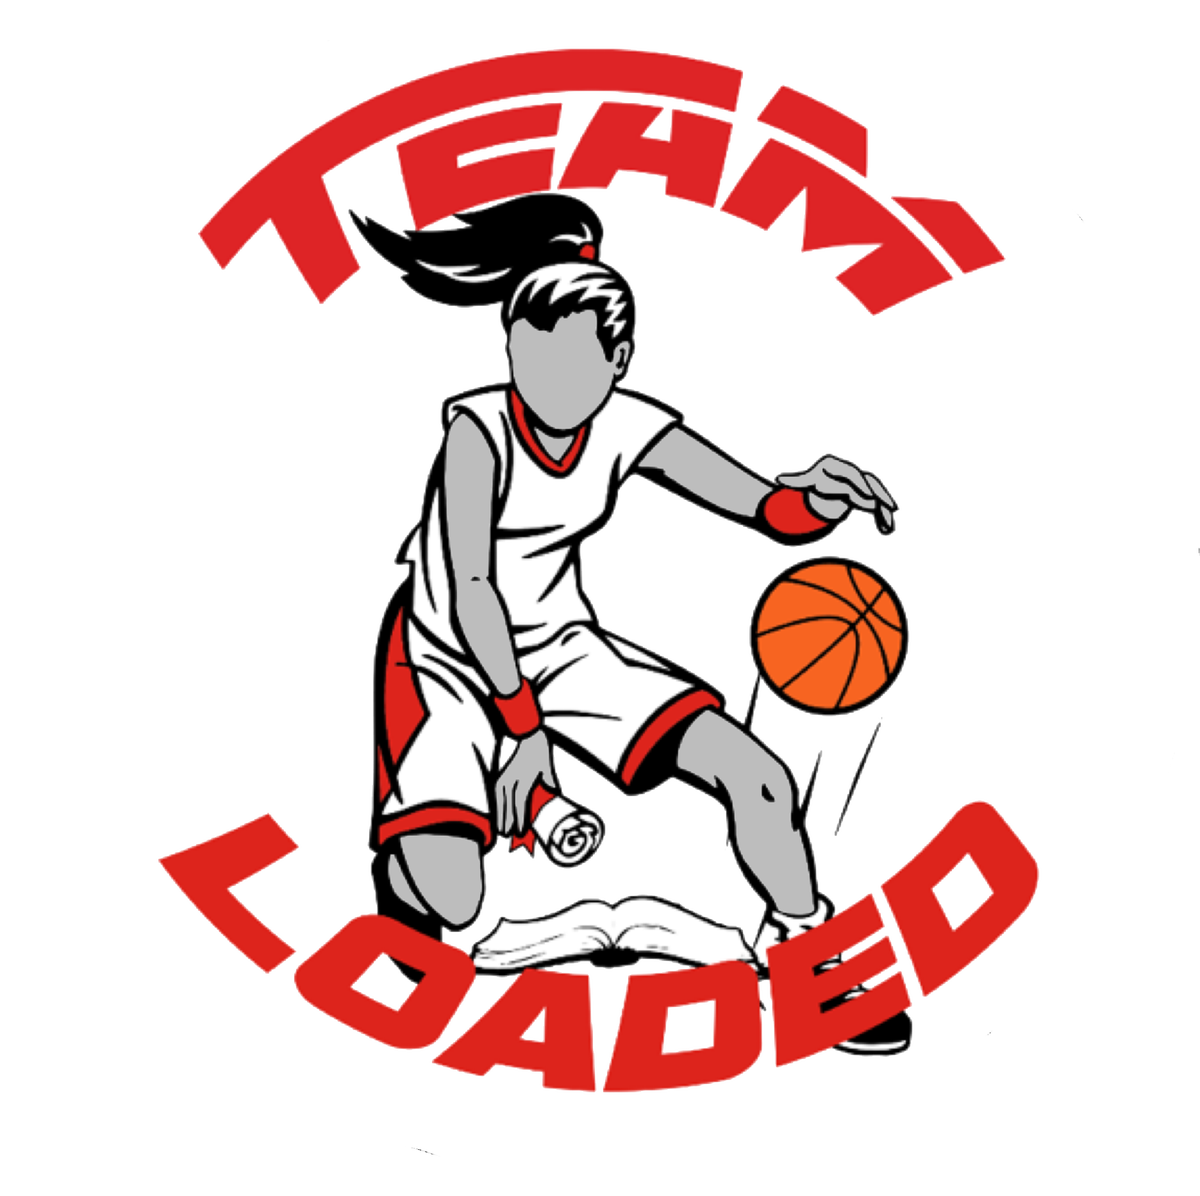 Basketball player dunking clipart jpg freeuse library Team Loaded- Building a Dynasty – Insider Exposure jpg freeuse library